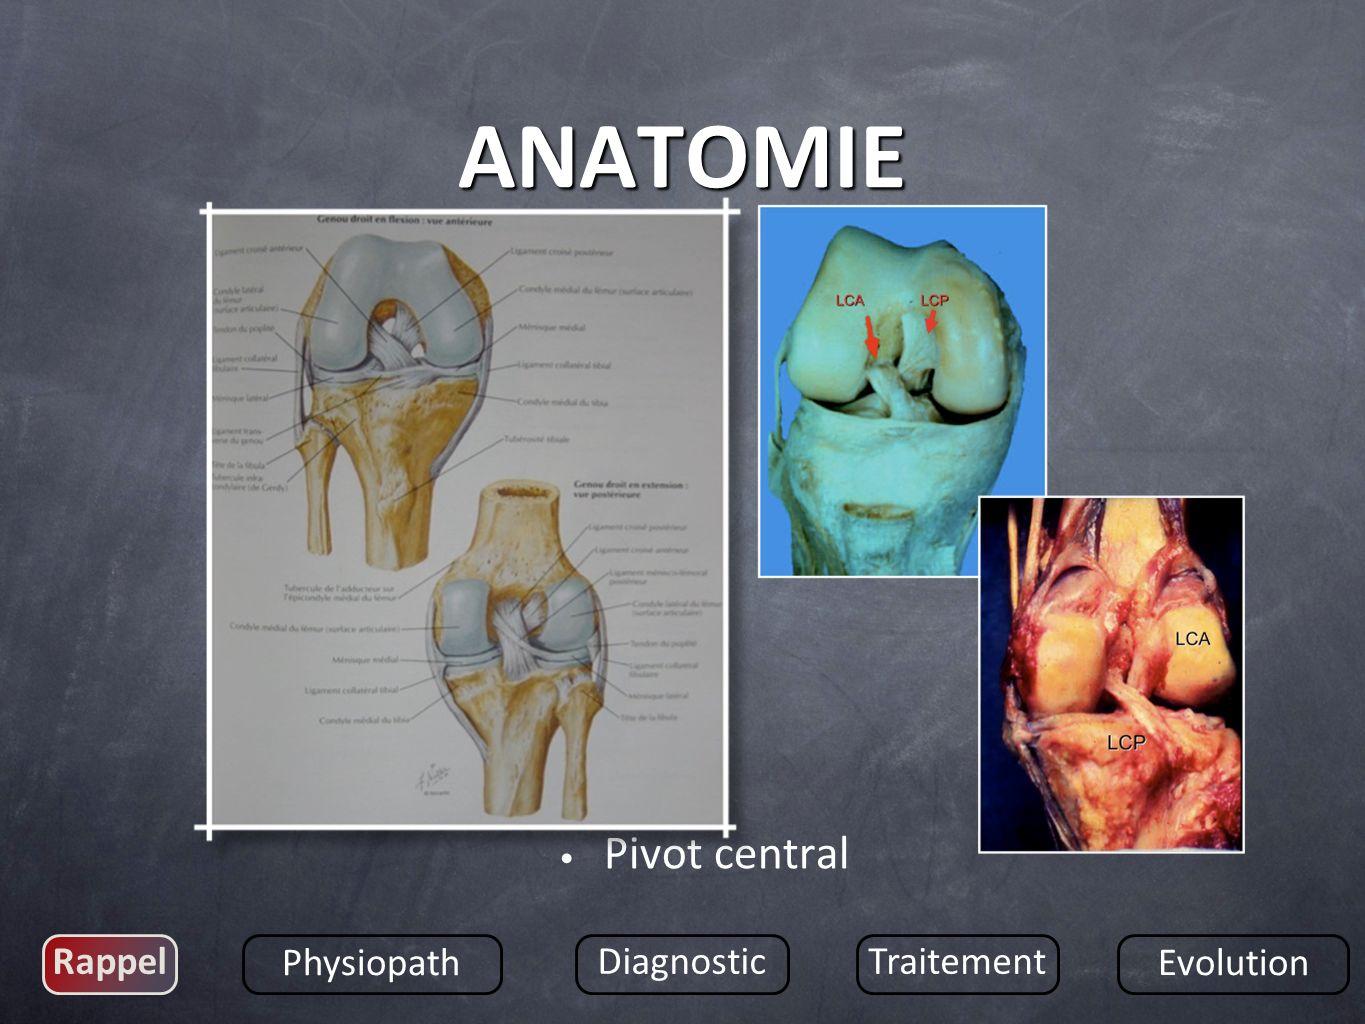 ANATOMIE Pivot central Rappel Physiopath Diagnostic Traitement